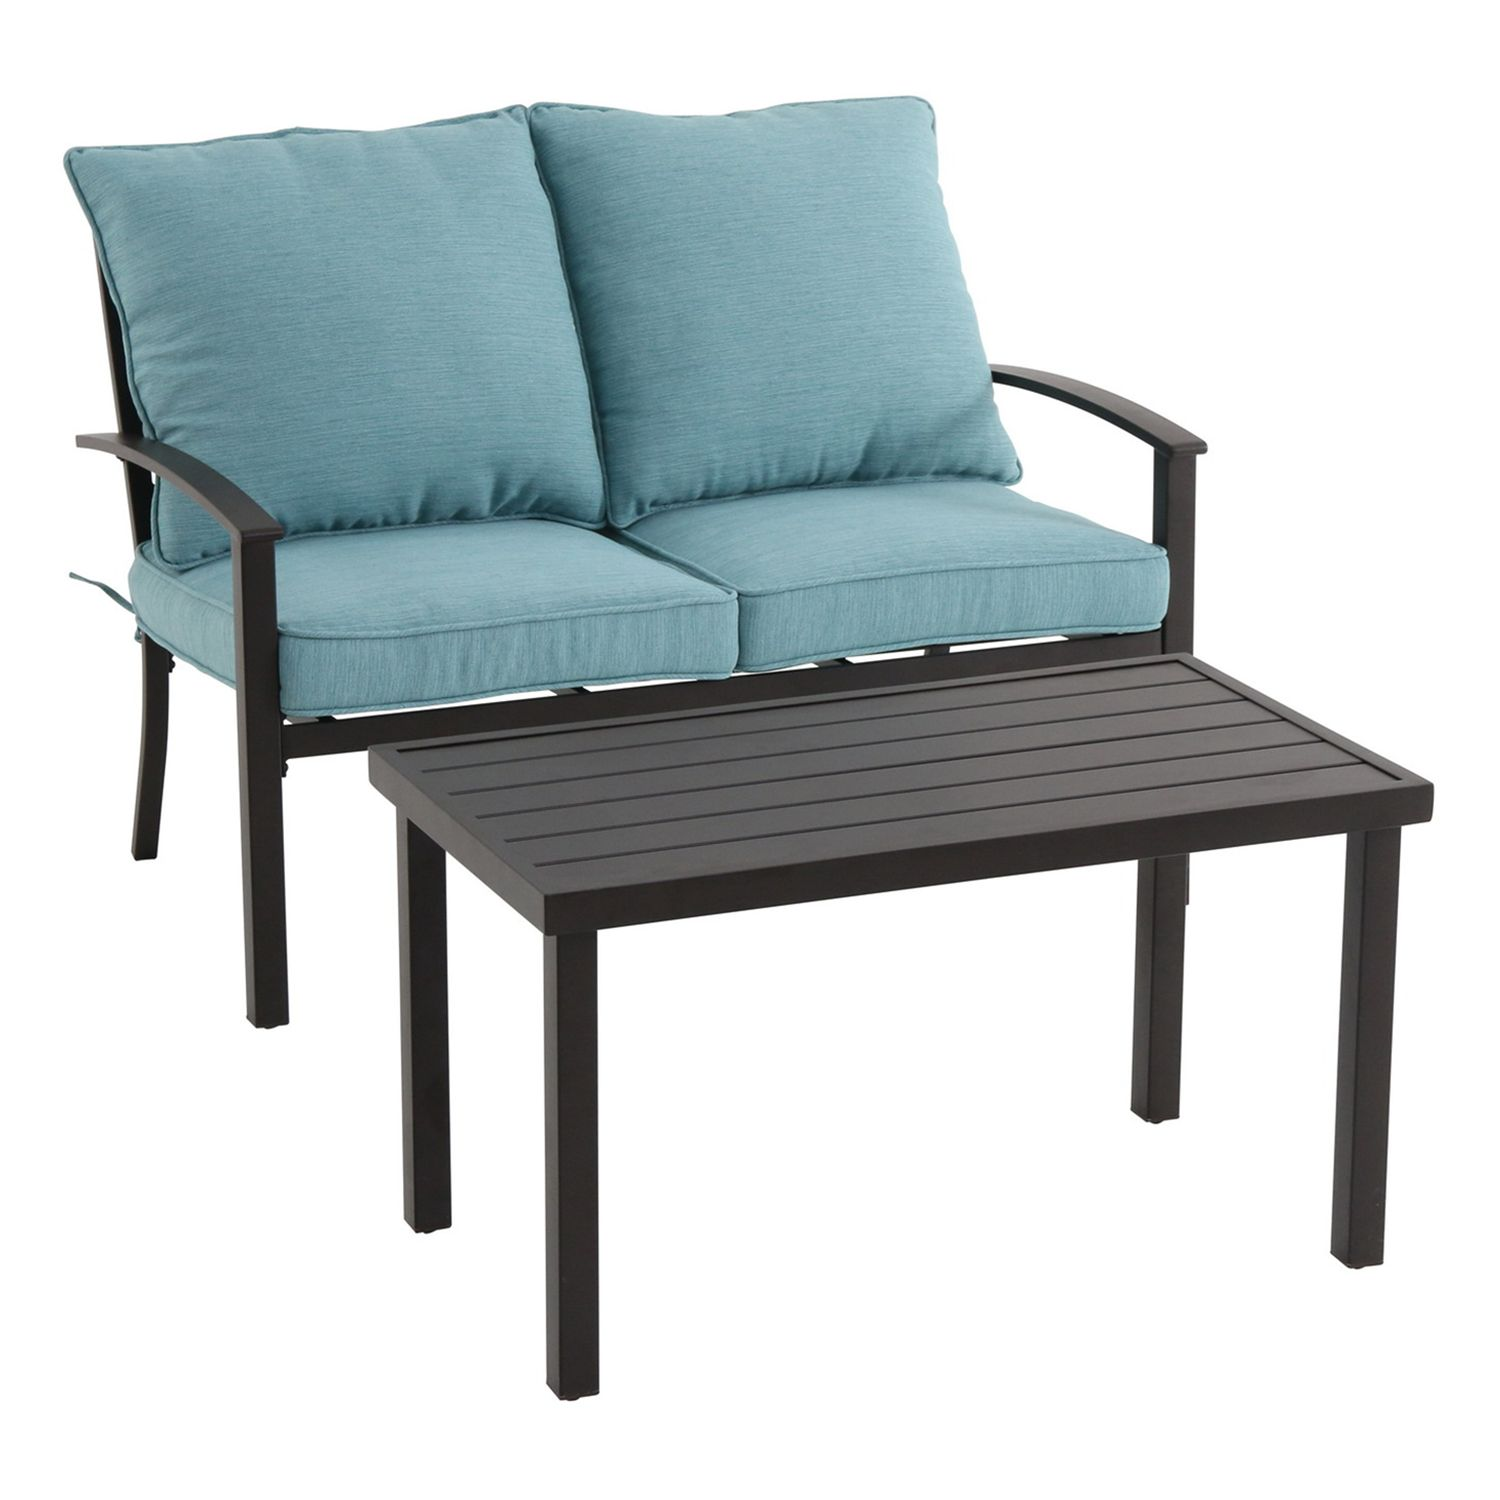 Charmant SONOMA Goods For Life™ Burbank Patio Loveseat U0026 Coffee Table 2 Piece Set